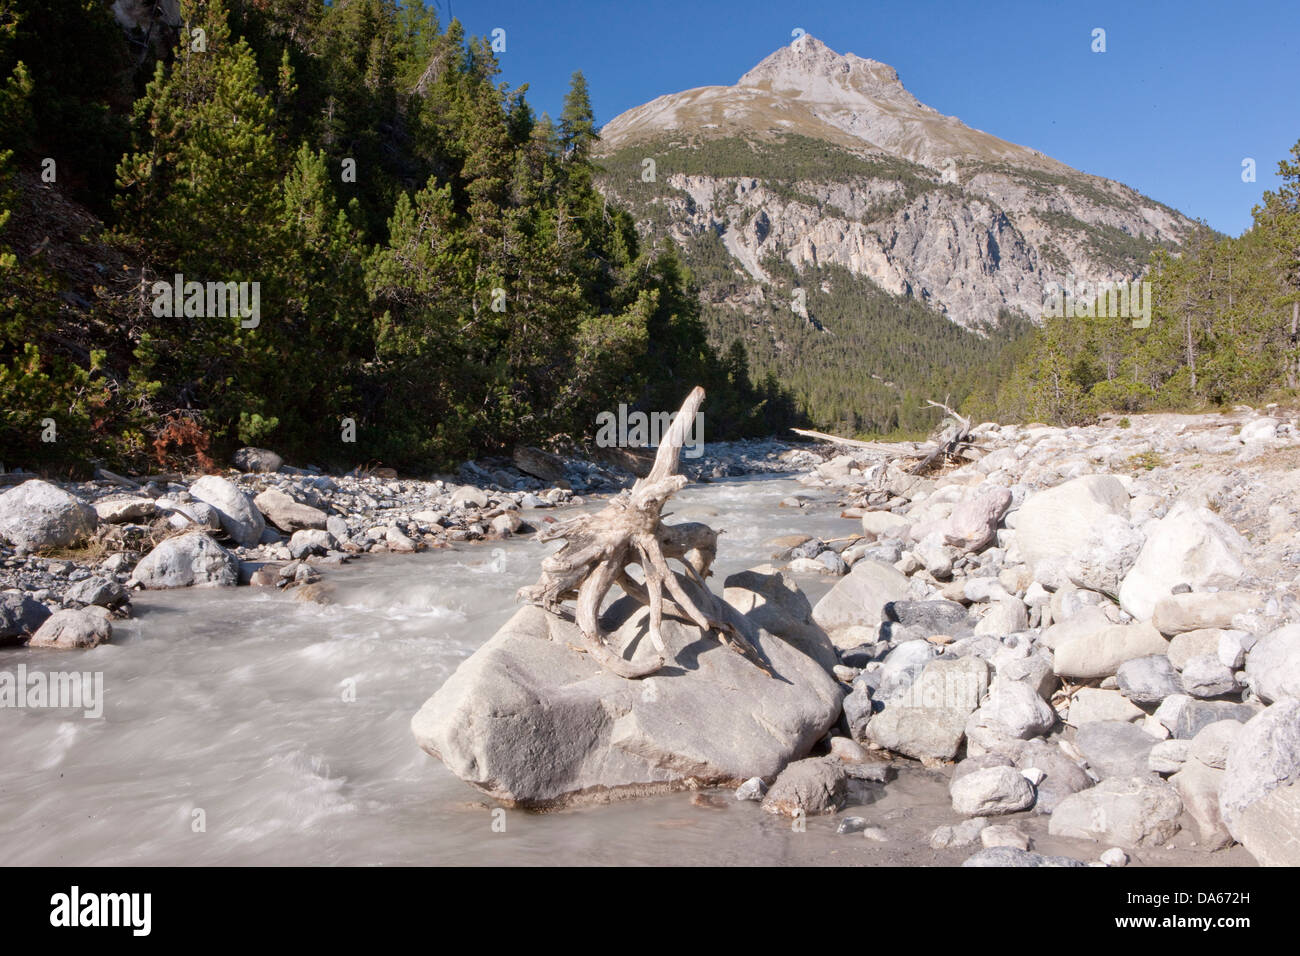 National park, Ofenpass, nature, Il Fuorn, wood, forest, canton, GR, Graubünden, Grisons, Switzerland, Europe, - Stock Image